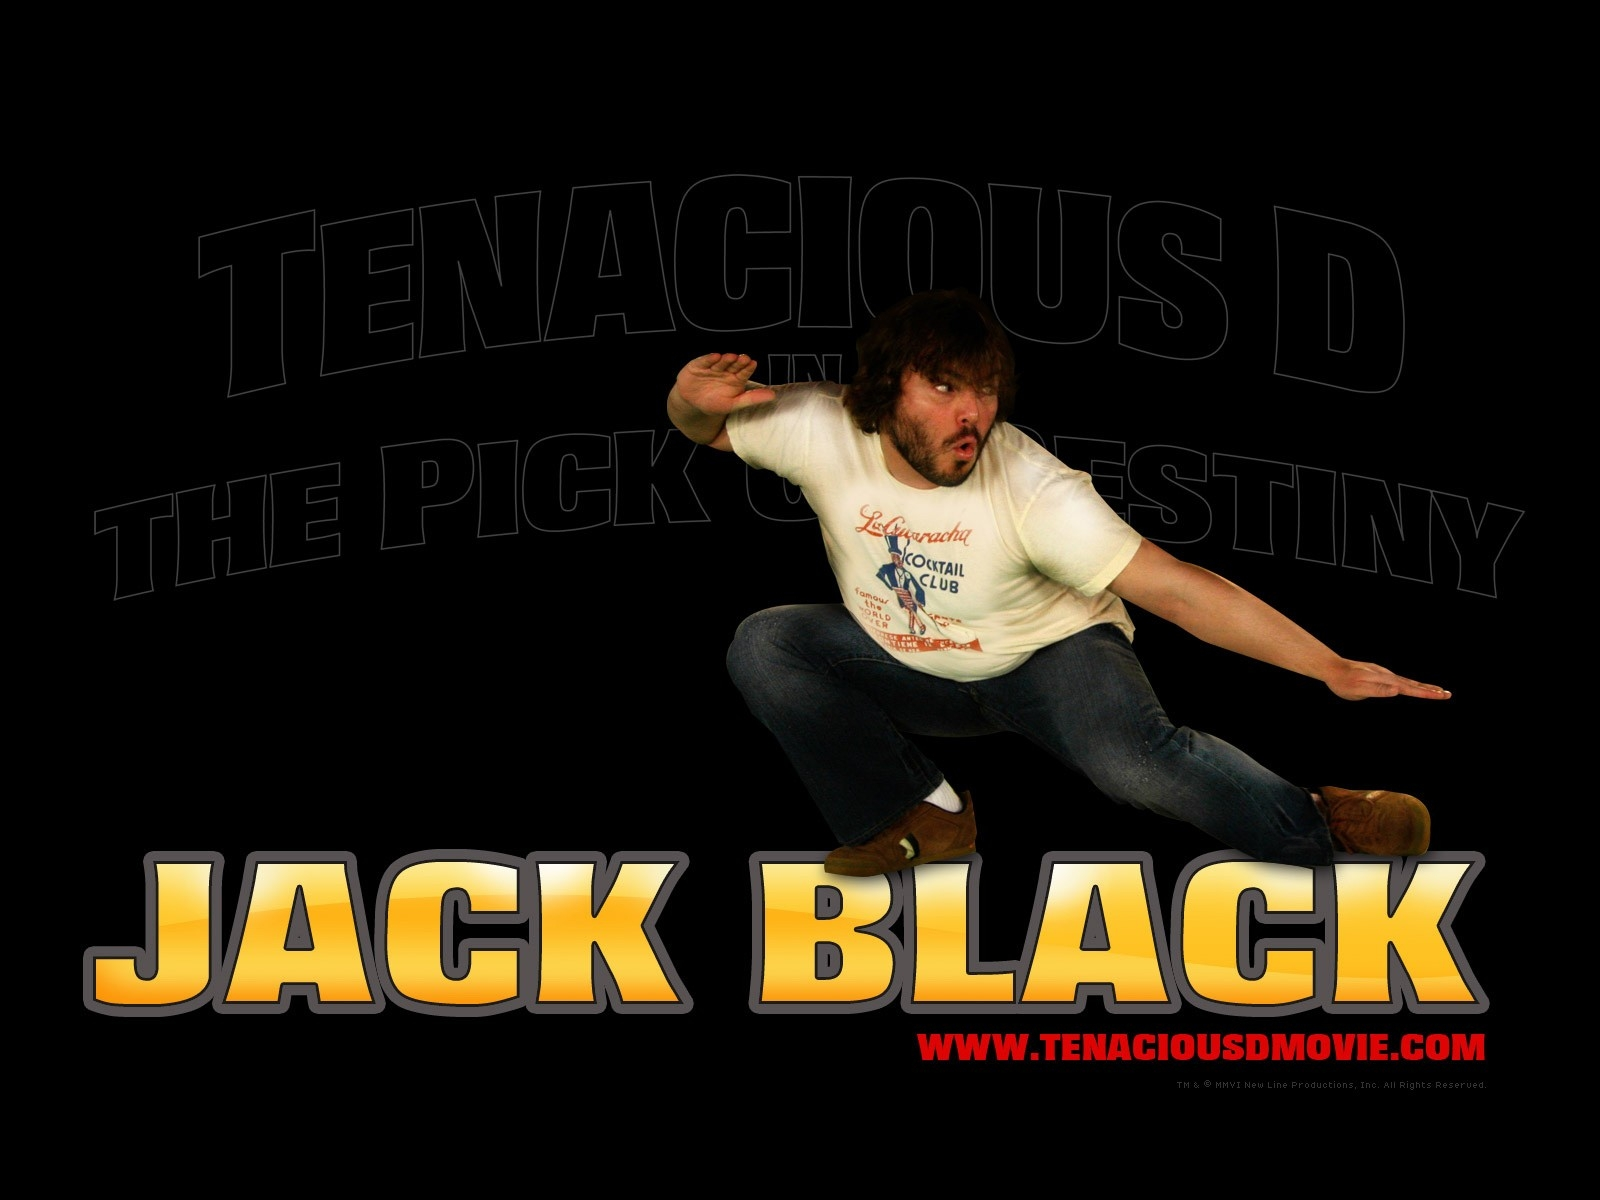 Jack Black in un wallpaper del film Tenacious D e il destino del rock